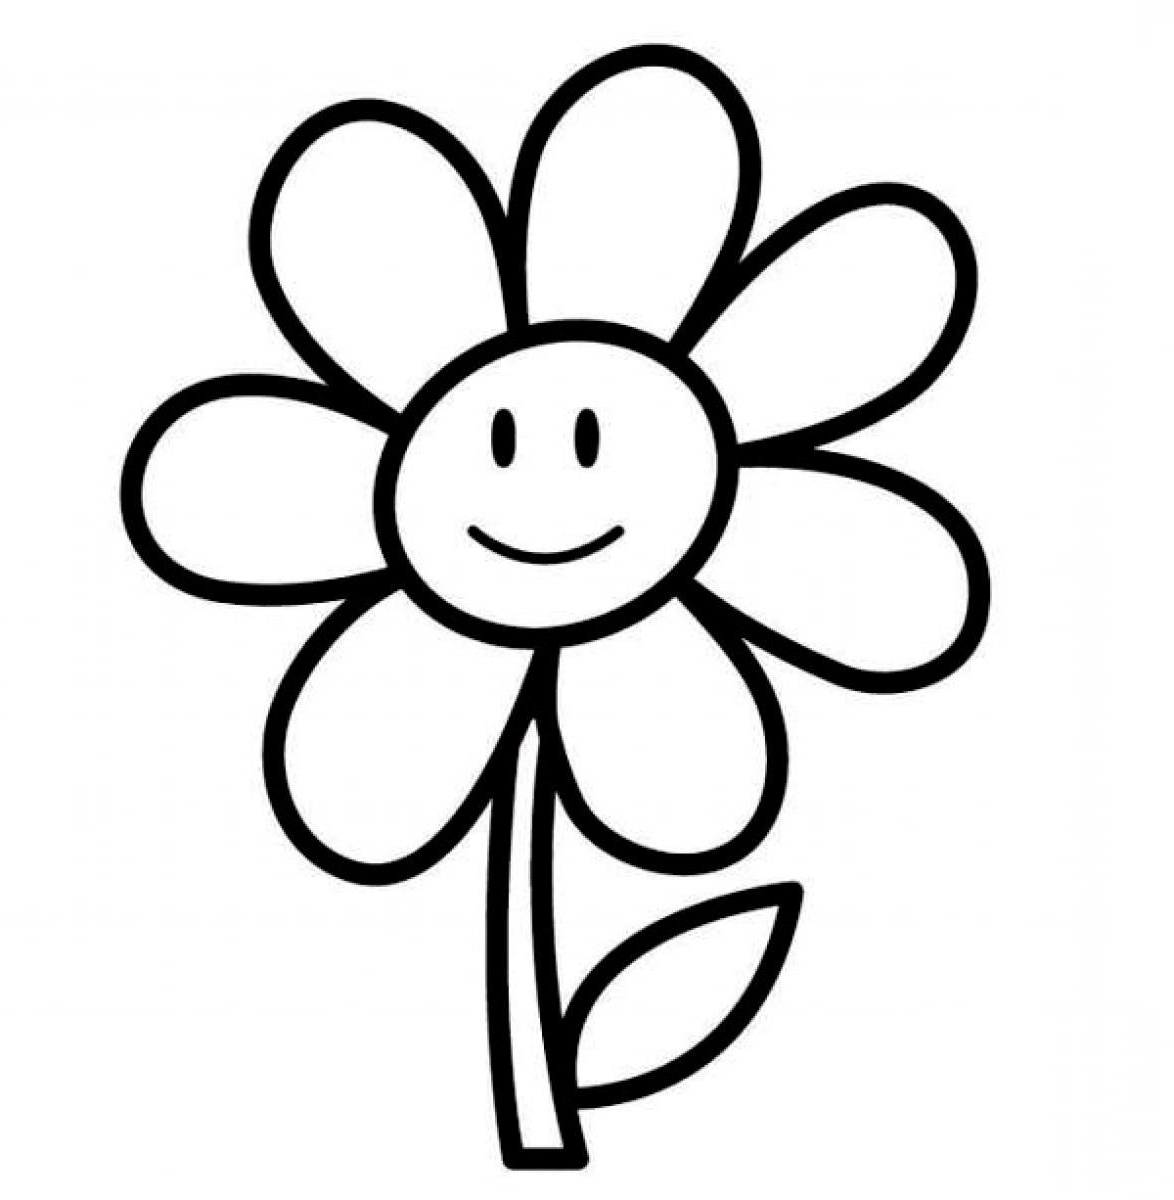 1174x1200 Simple Flower Drawing S For Kids Simple Flower Drawing For Kids